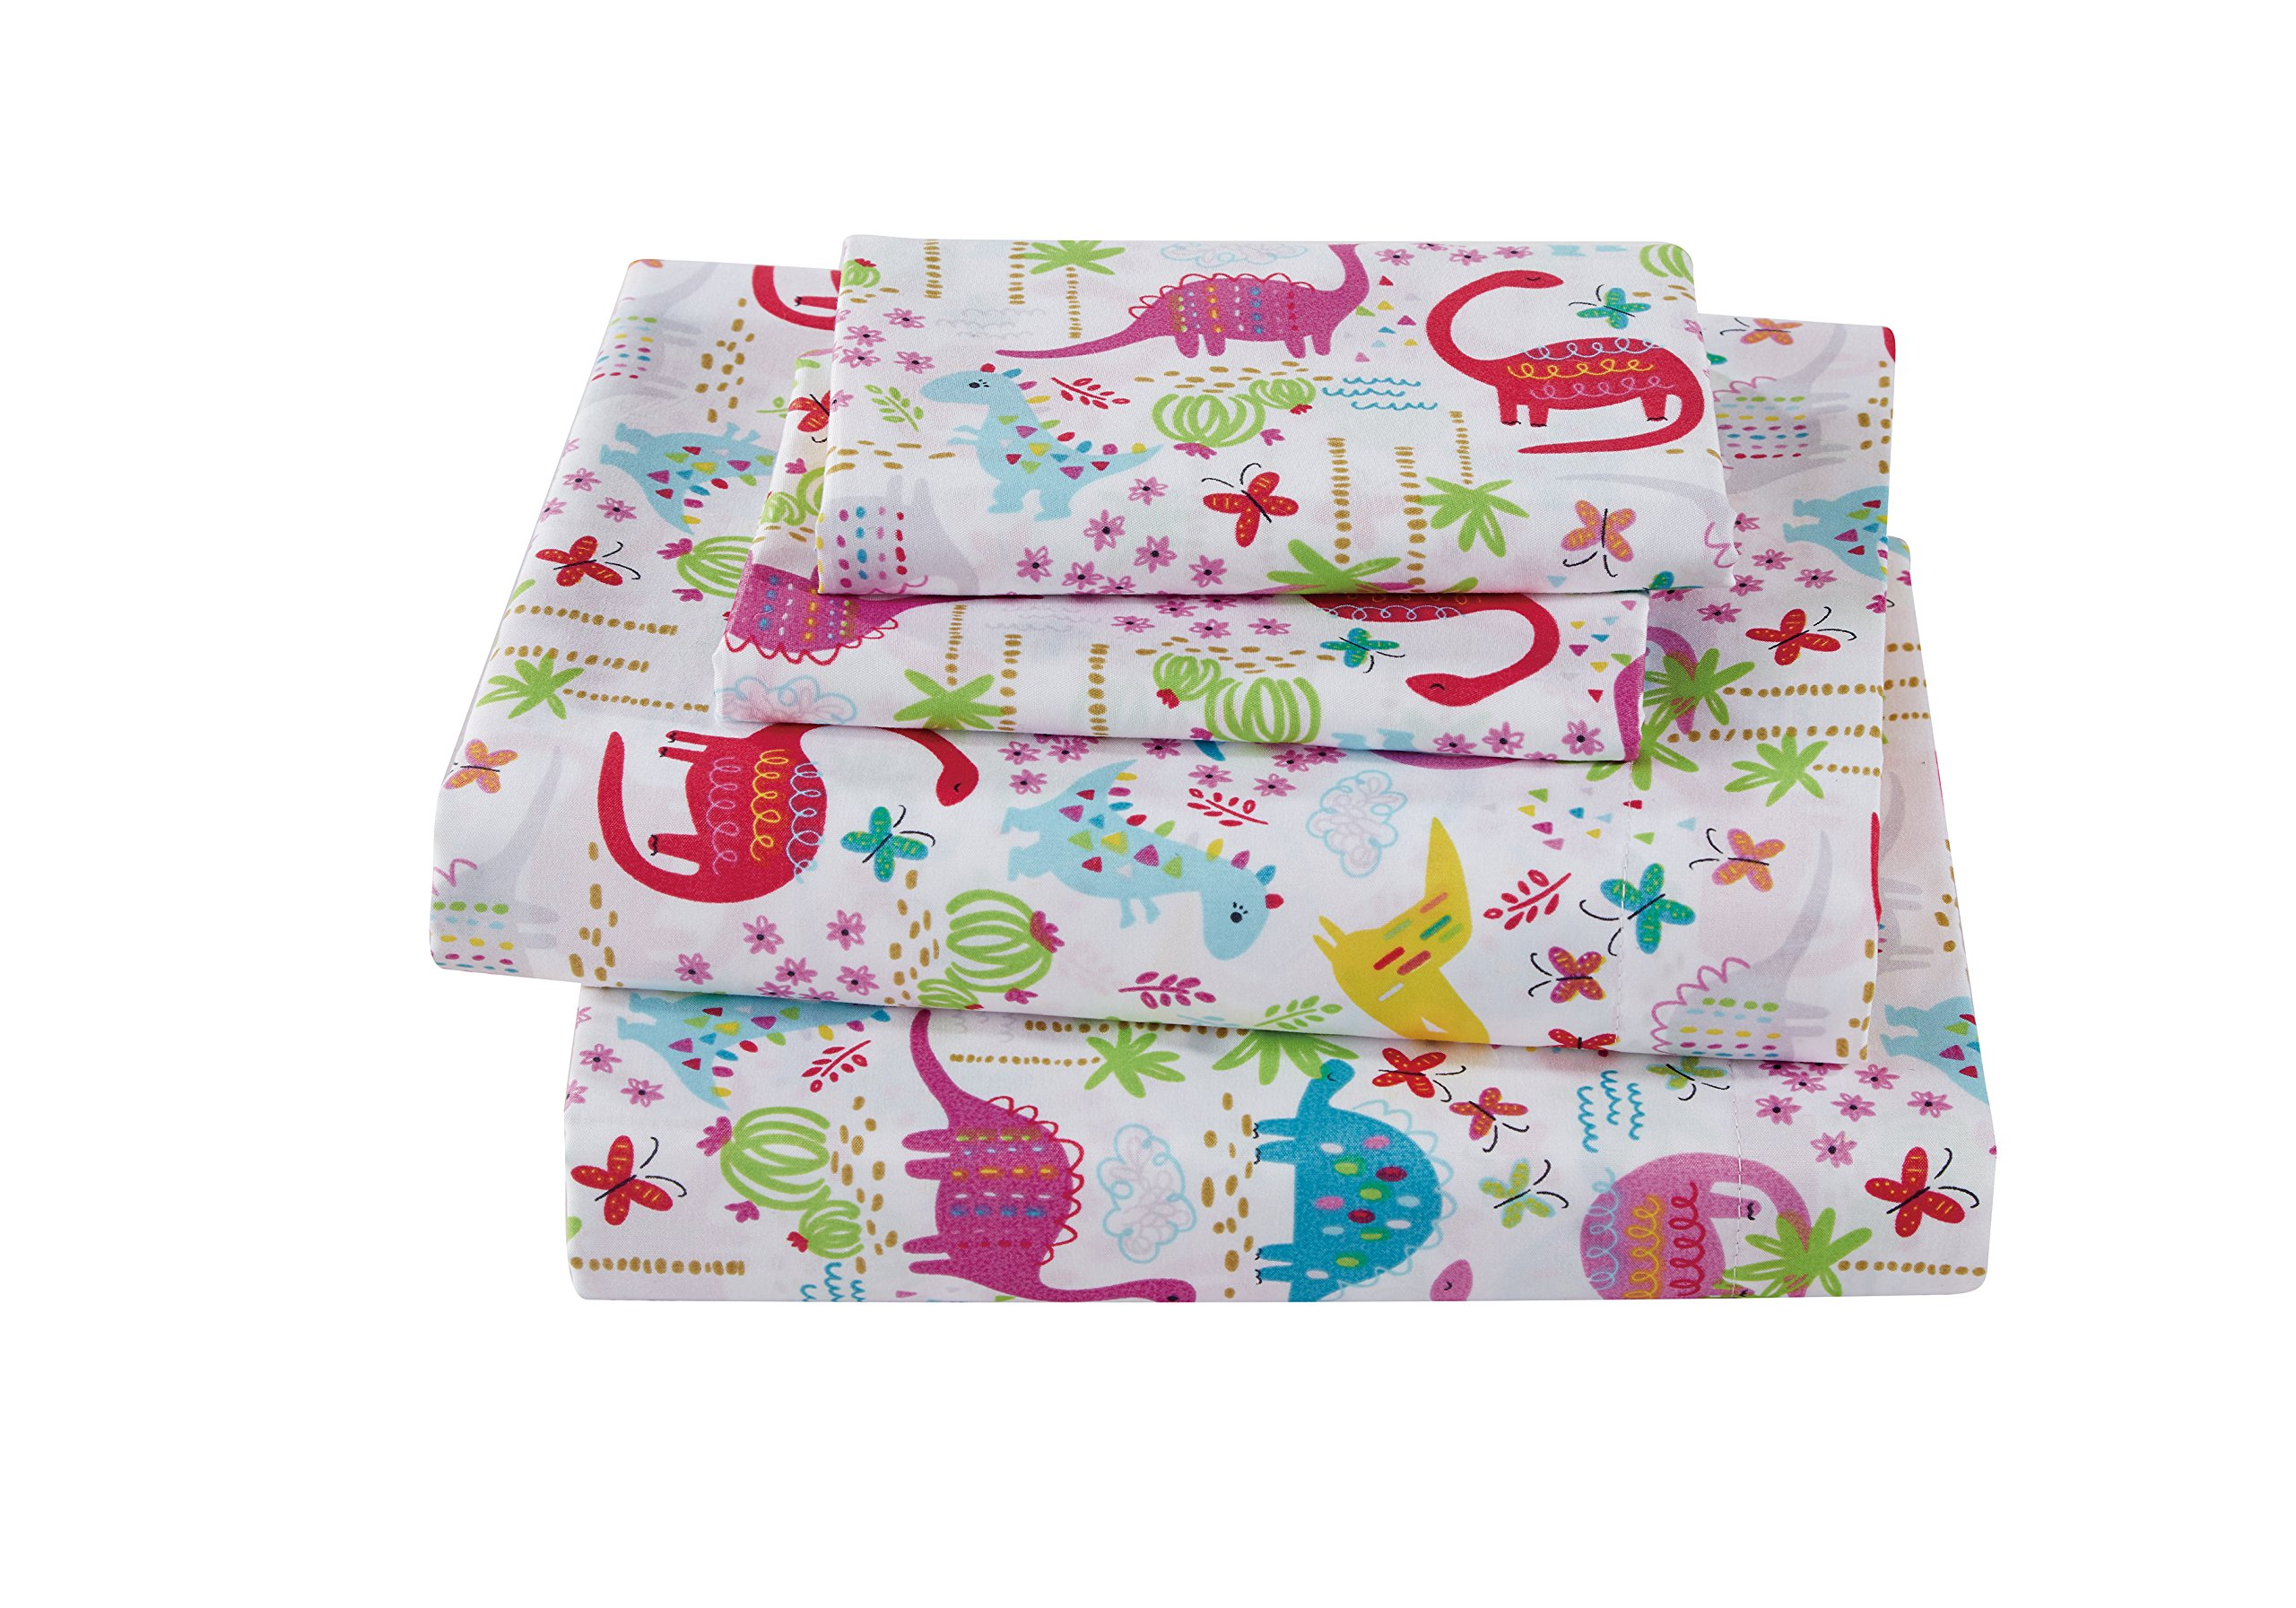 Fancy Collection Teen/Girls 4pc Full Size Sheet Set Dinosaur Pink Purple Turquoise Lime Green # Dinosaur Pink